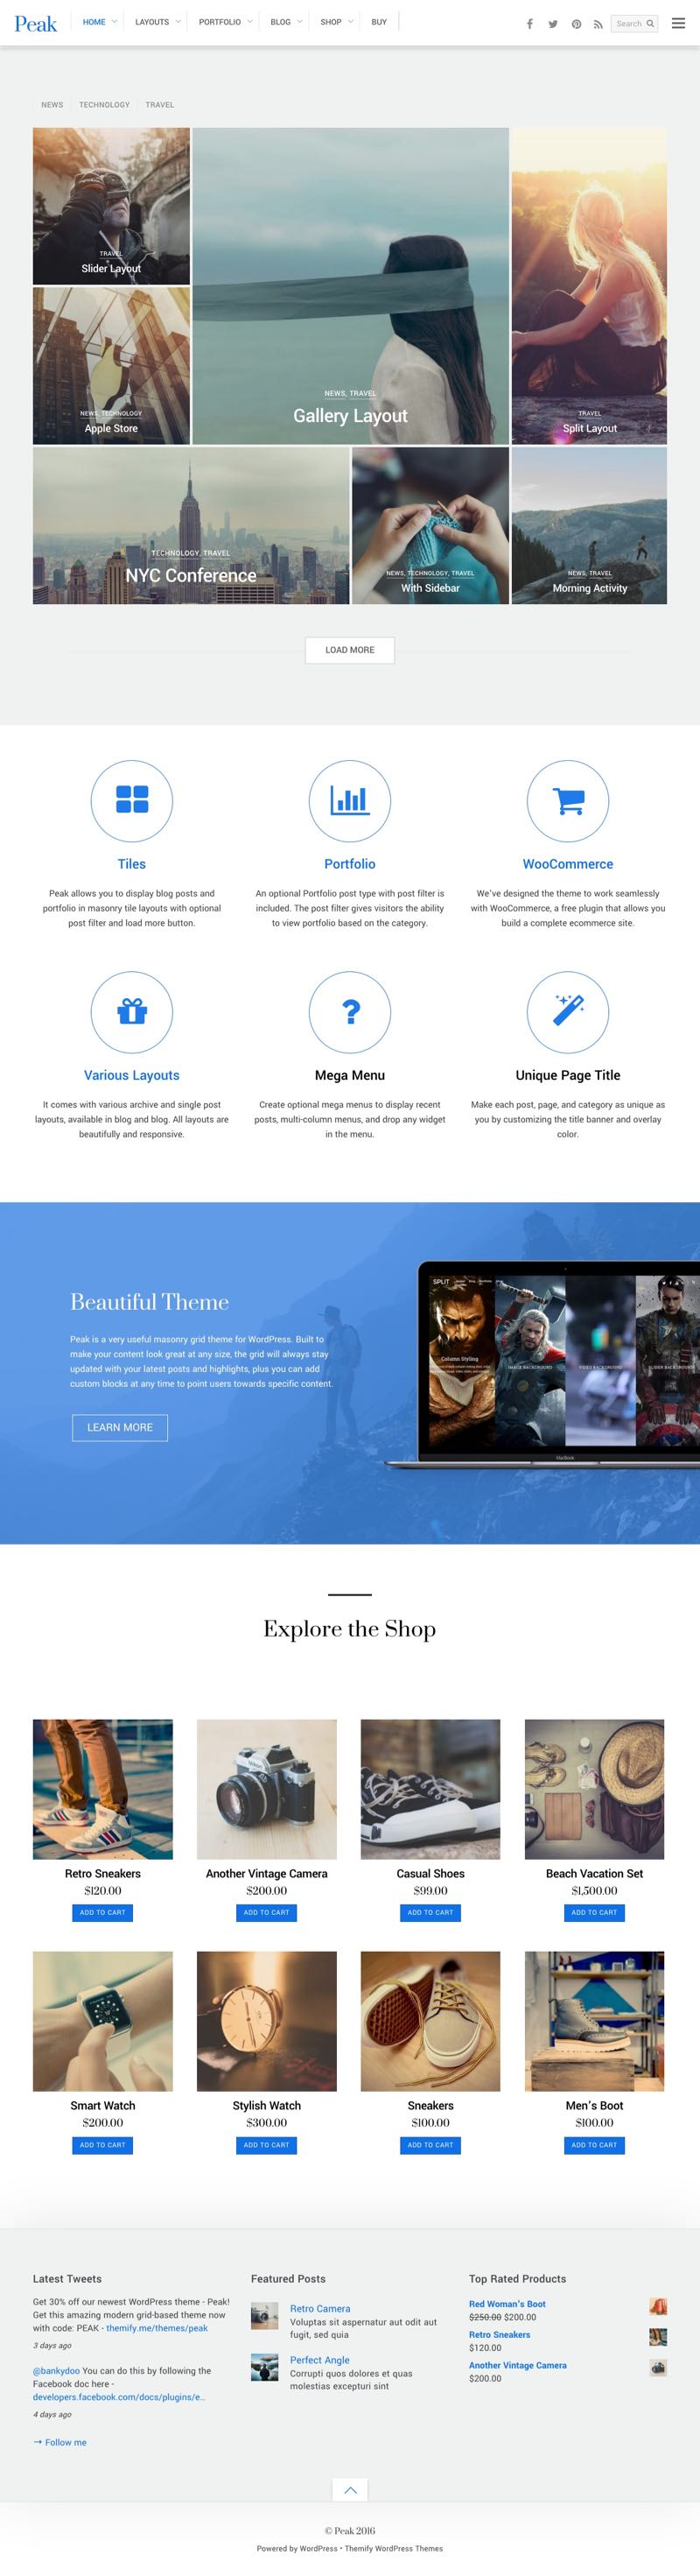 Peak WordPress Grid WordPress Theme